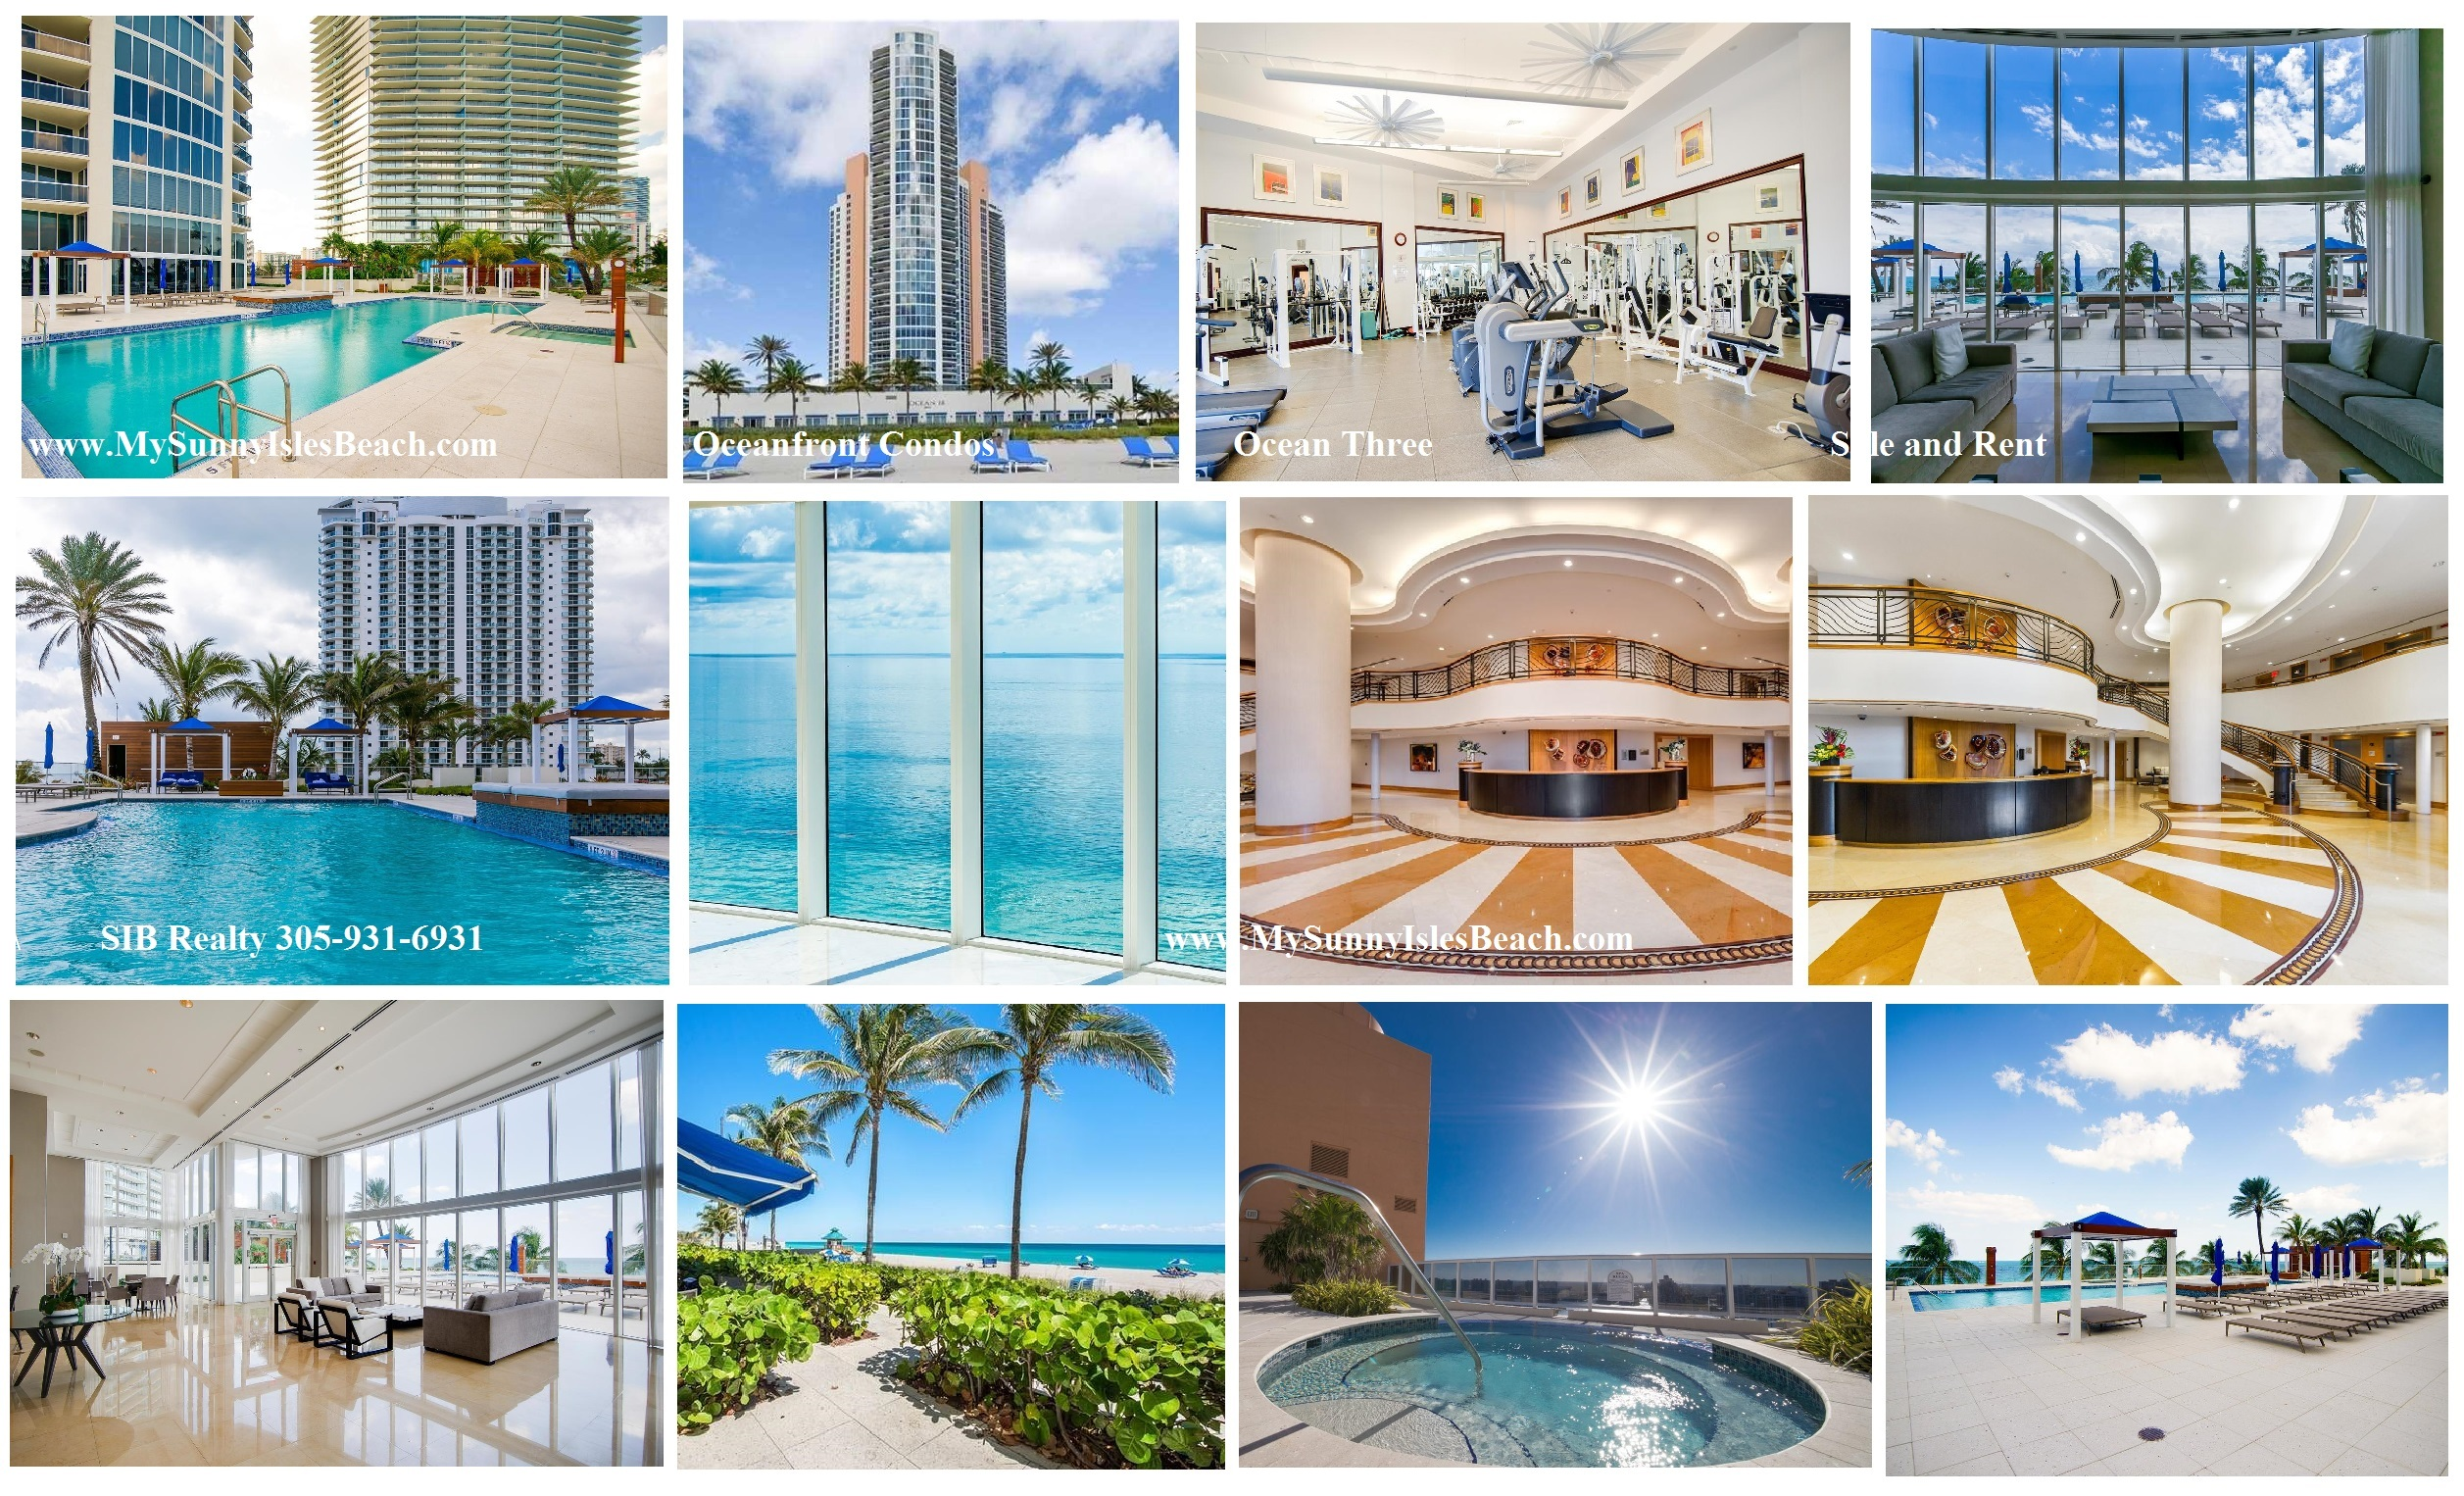 Ocean Three Sunny Isles Beach Condo For Sale with SIB Realty